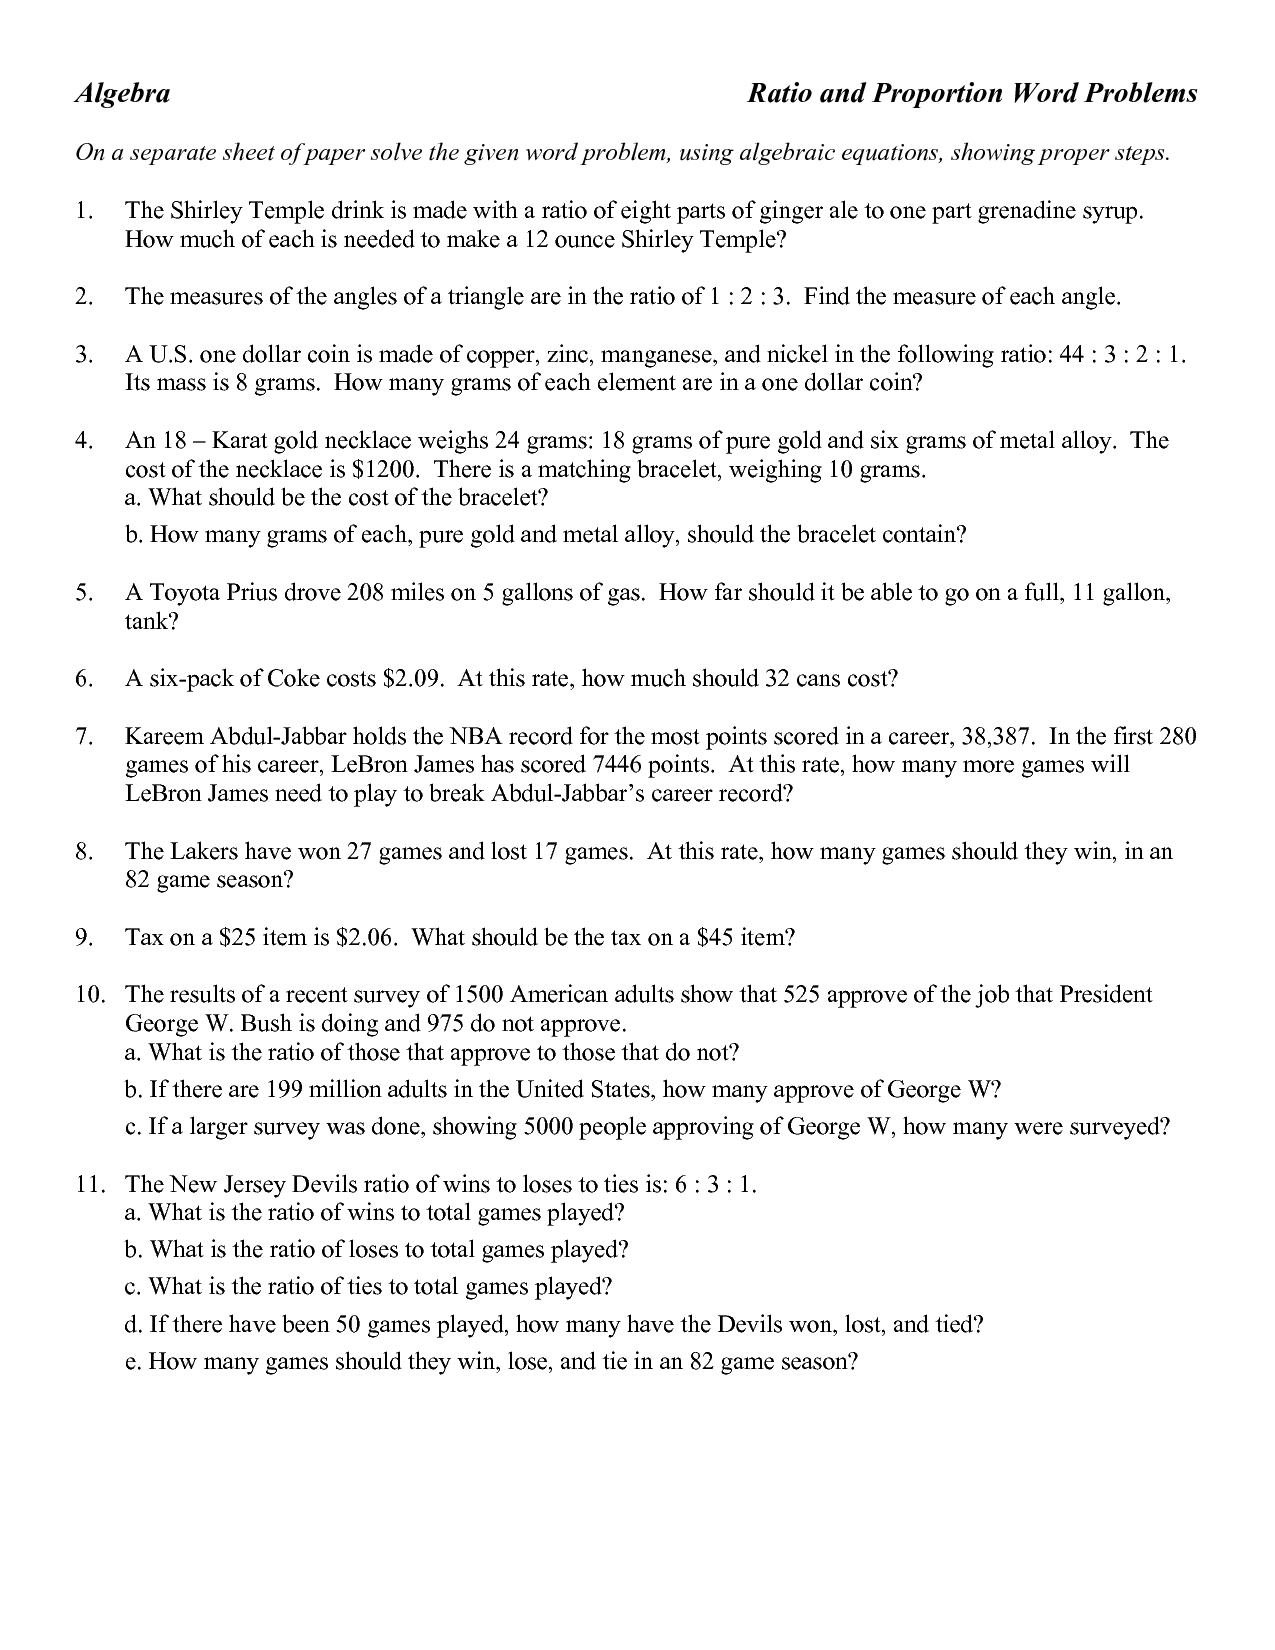 Algebra Word Problem Worksheet